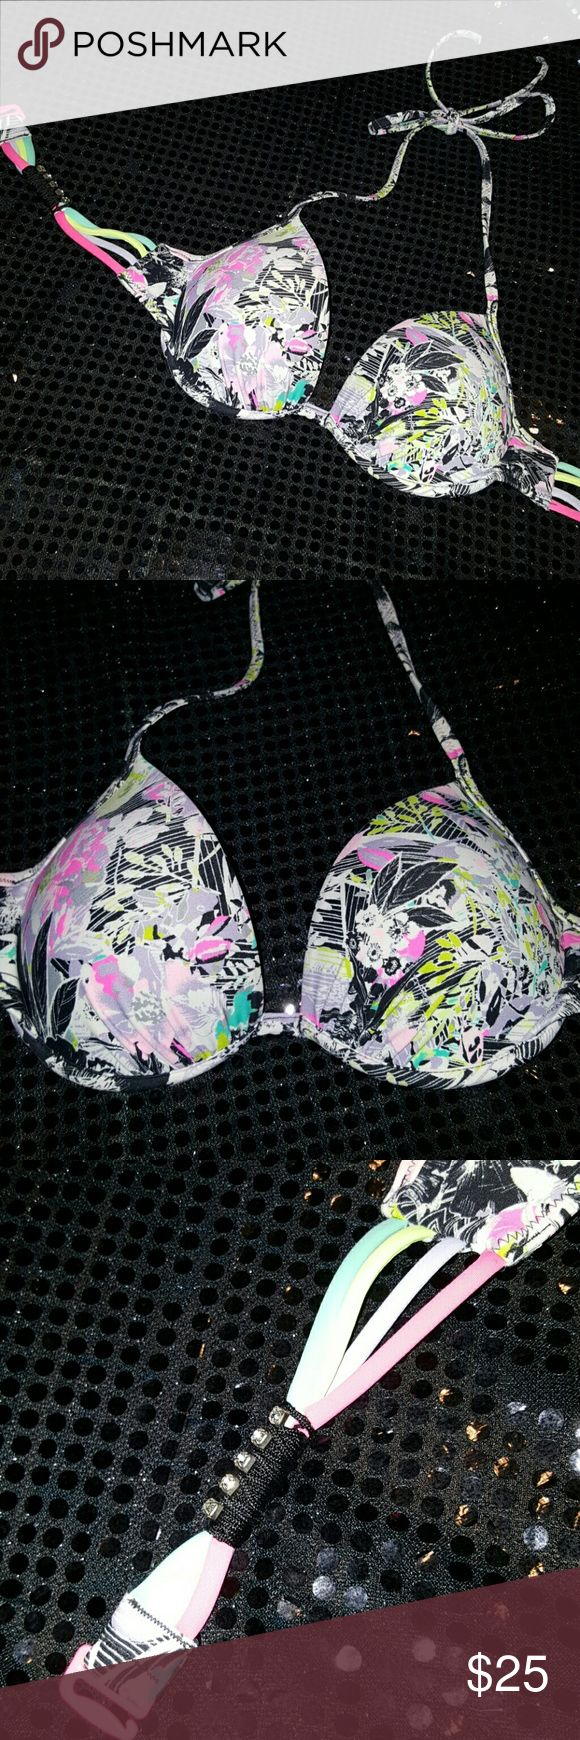 2015 Swim halter bikini top 32B Rhinestones Bright colors, only worn a couple times. Tag was cut out because it would pop out. It it a 32B. Gated strap with neon pink hook closure. Lavender seafood neon yellow and hot pink colors accent the black floral print. Super cute. Victoria's Secret Swim Bikinis